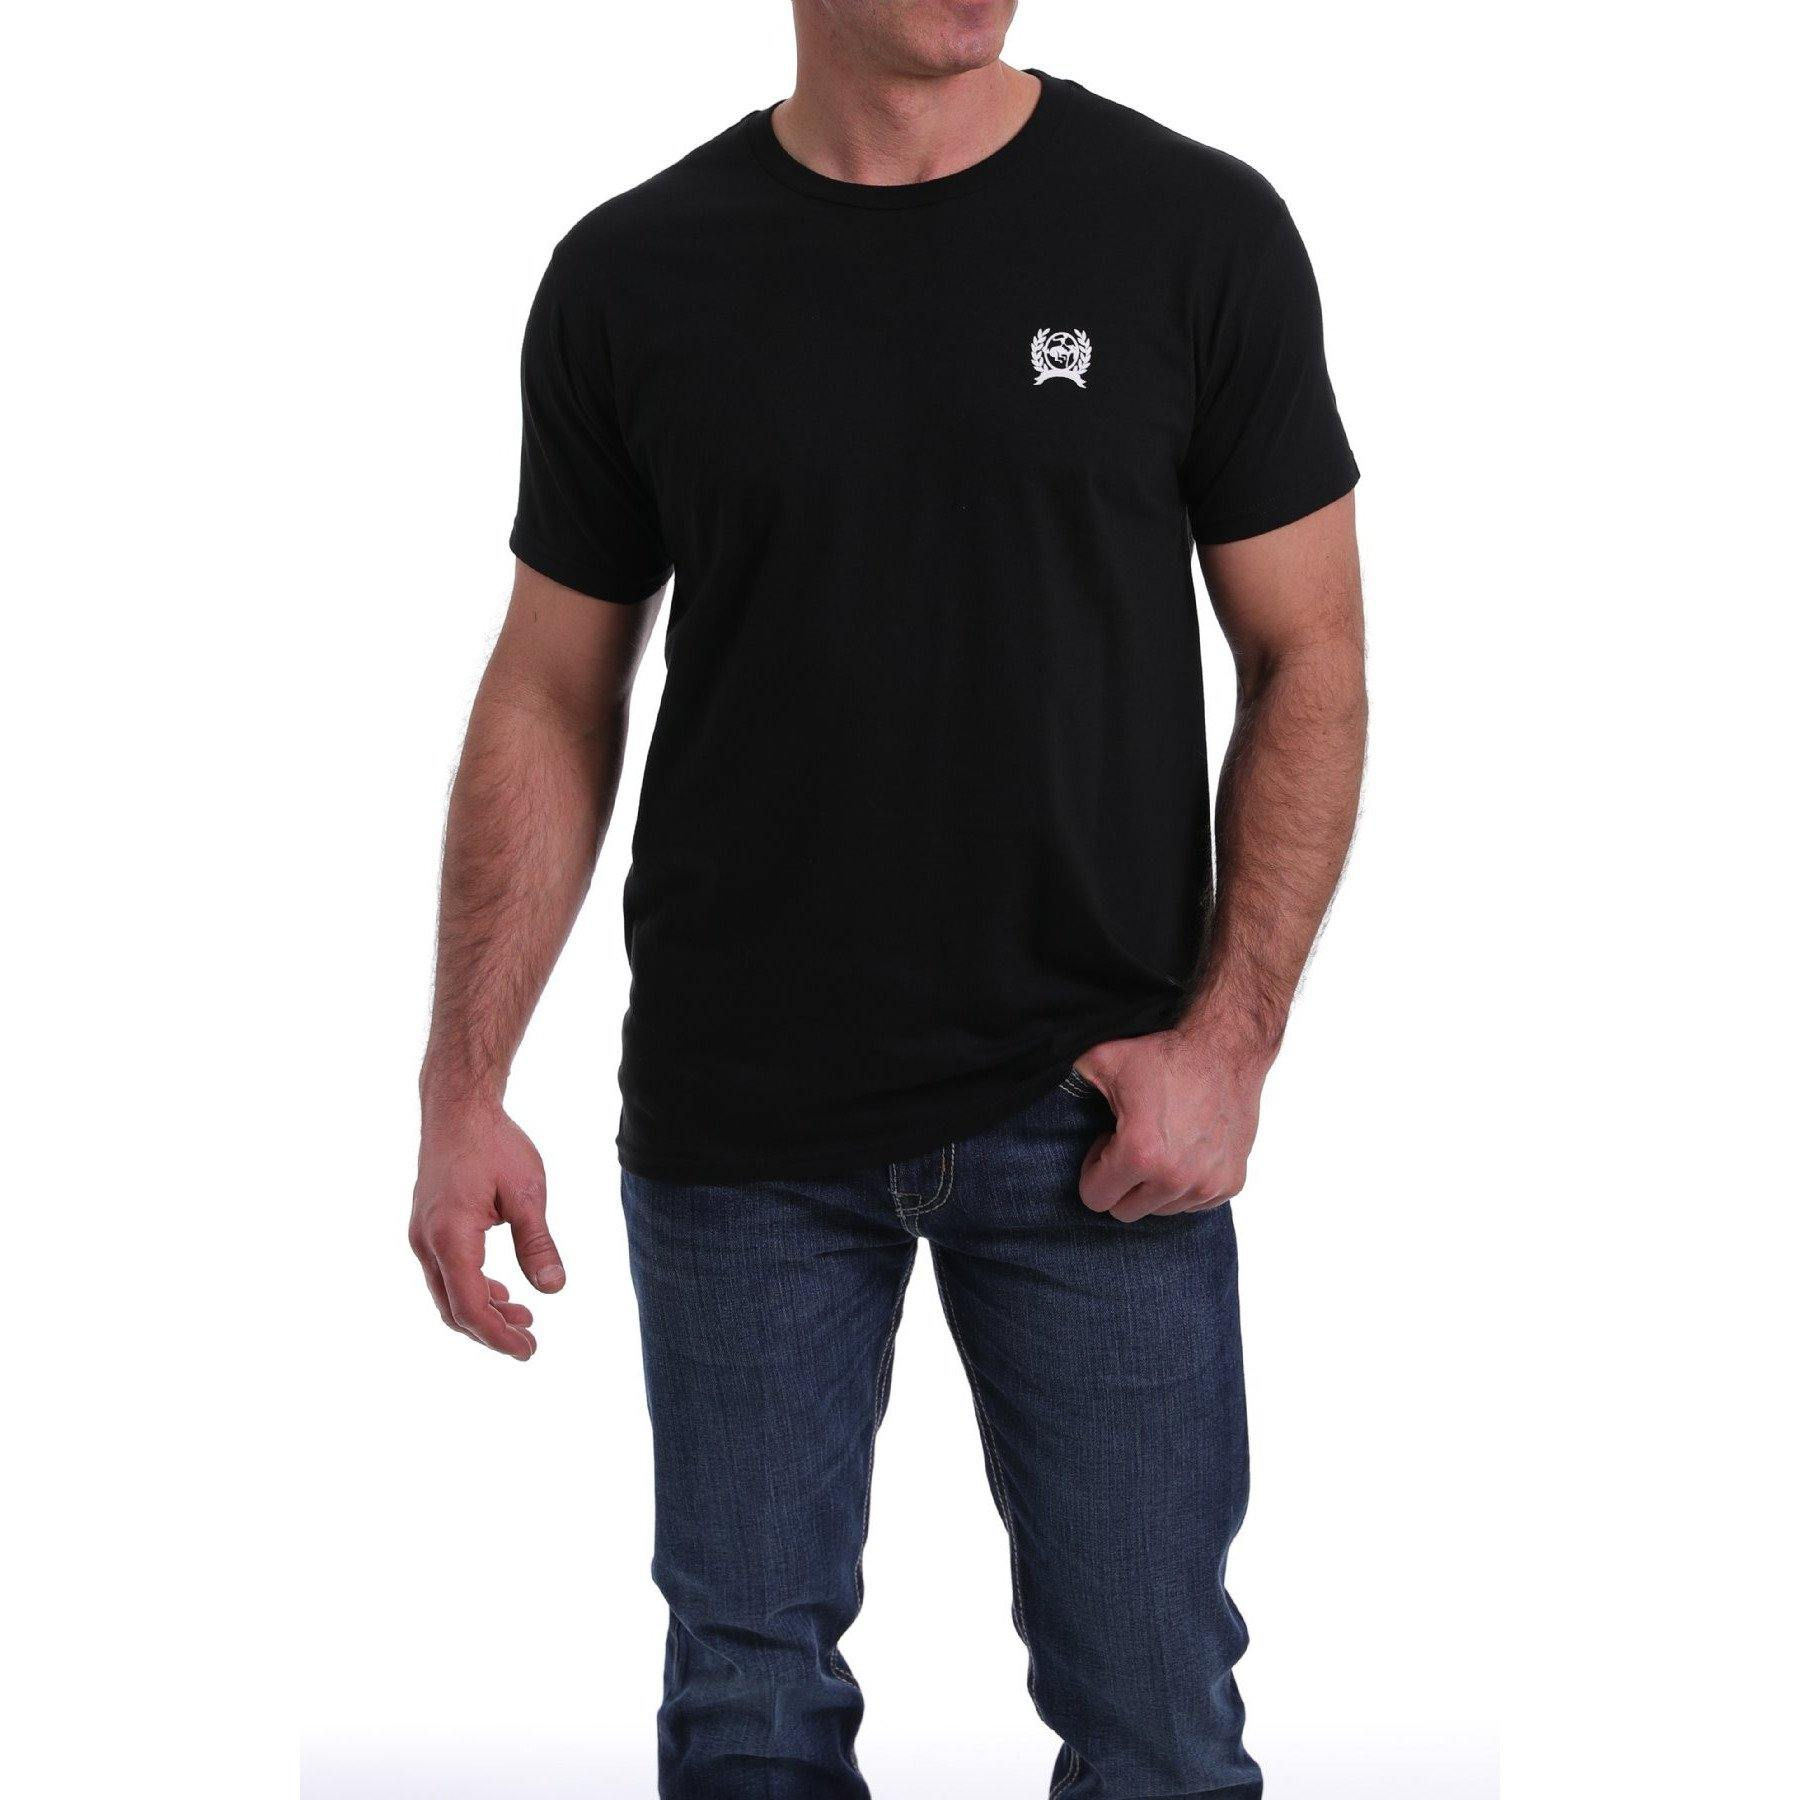 CINCH MEN'S CREW NECK FRONT AND BACK LOGO TEE - BLACK - CWesternwear